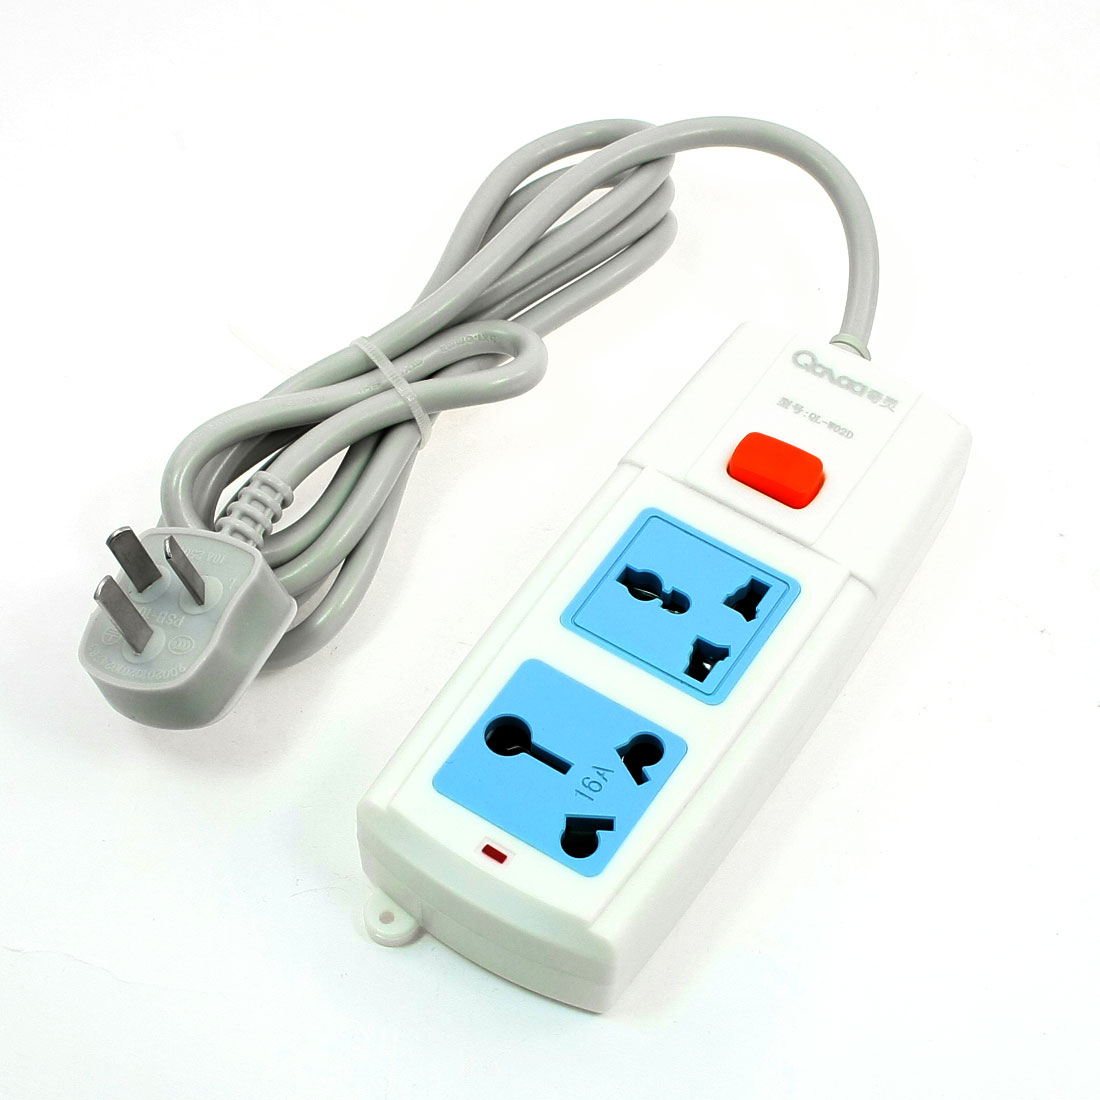 AU Plug AC 250V Multi Type Socket Power Strip 2 Outlet Splitter 1.7M